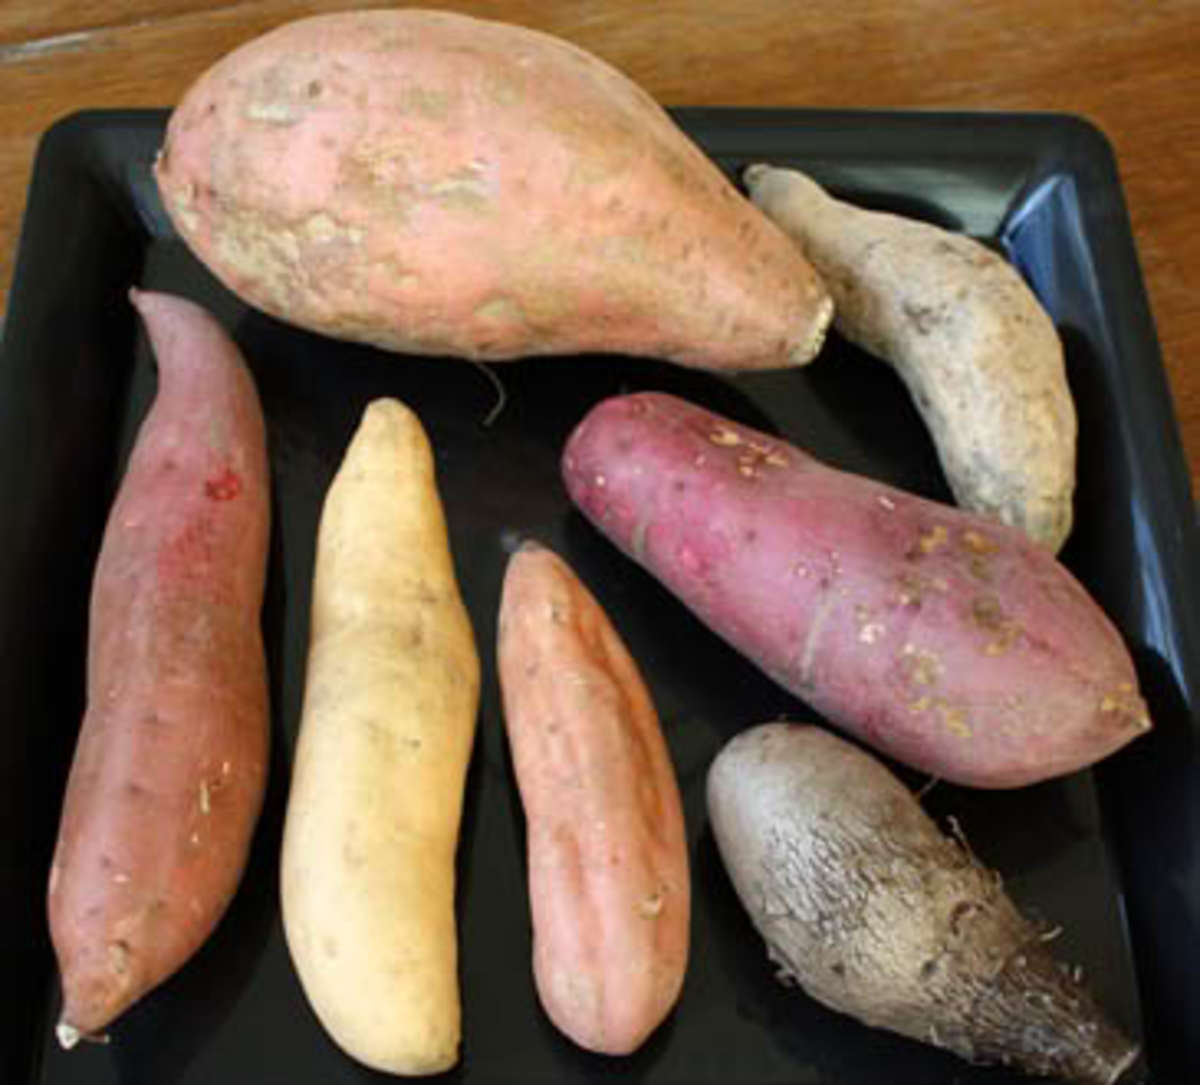 YAMS vs SWEET POTATOES - Yam and Sweet Potato Nutritional Comparison